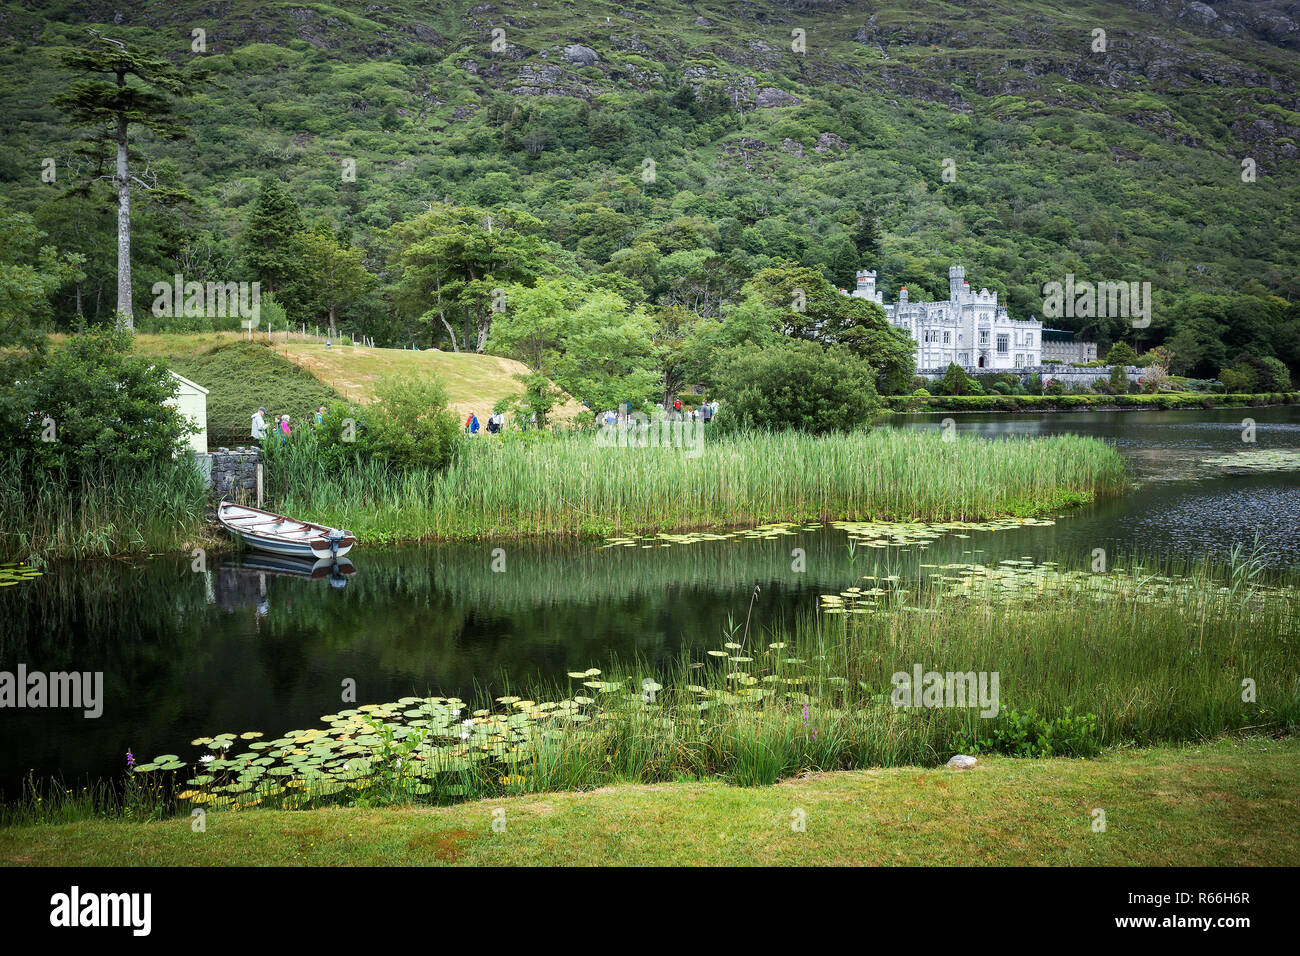 Kylemore Abbey surrounded by the woods, Galway, Ireland - Stock Image